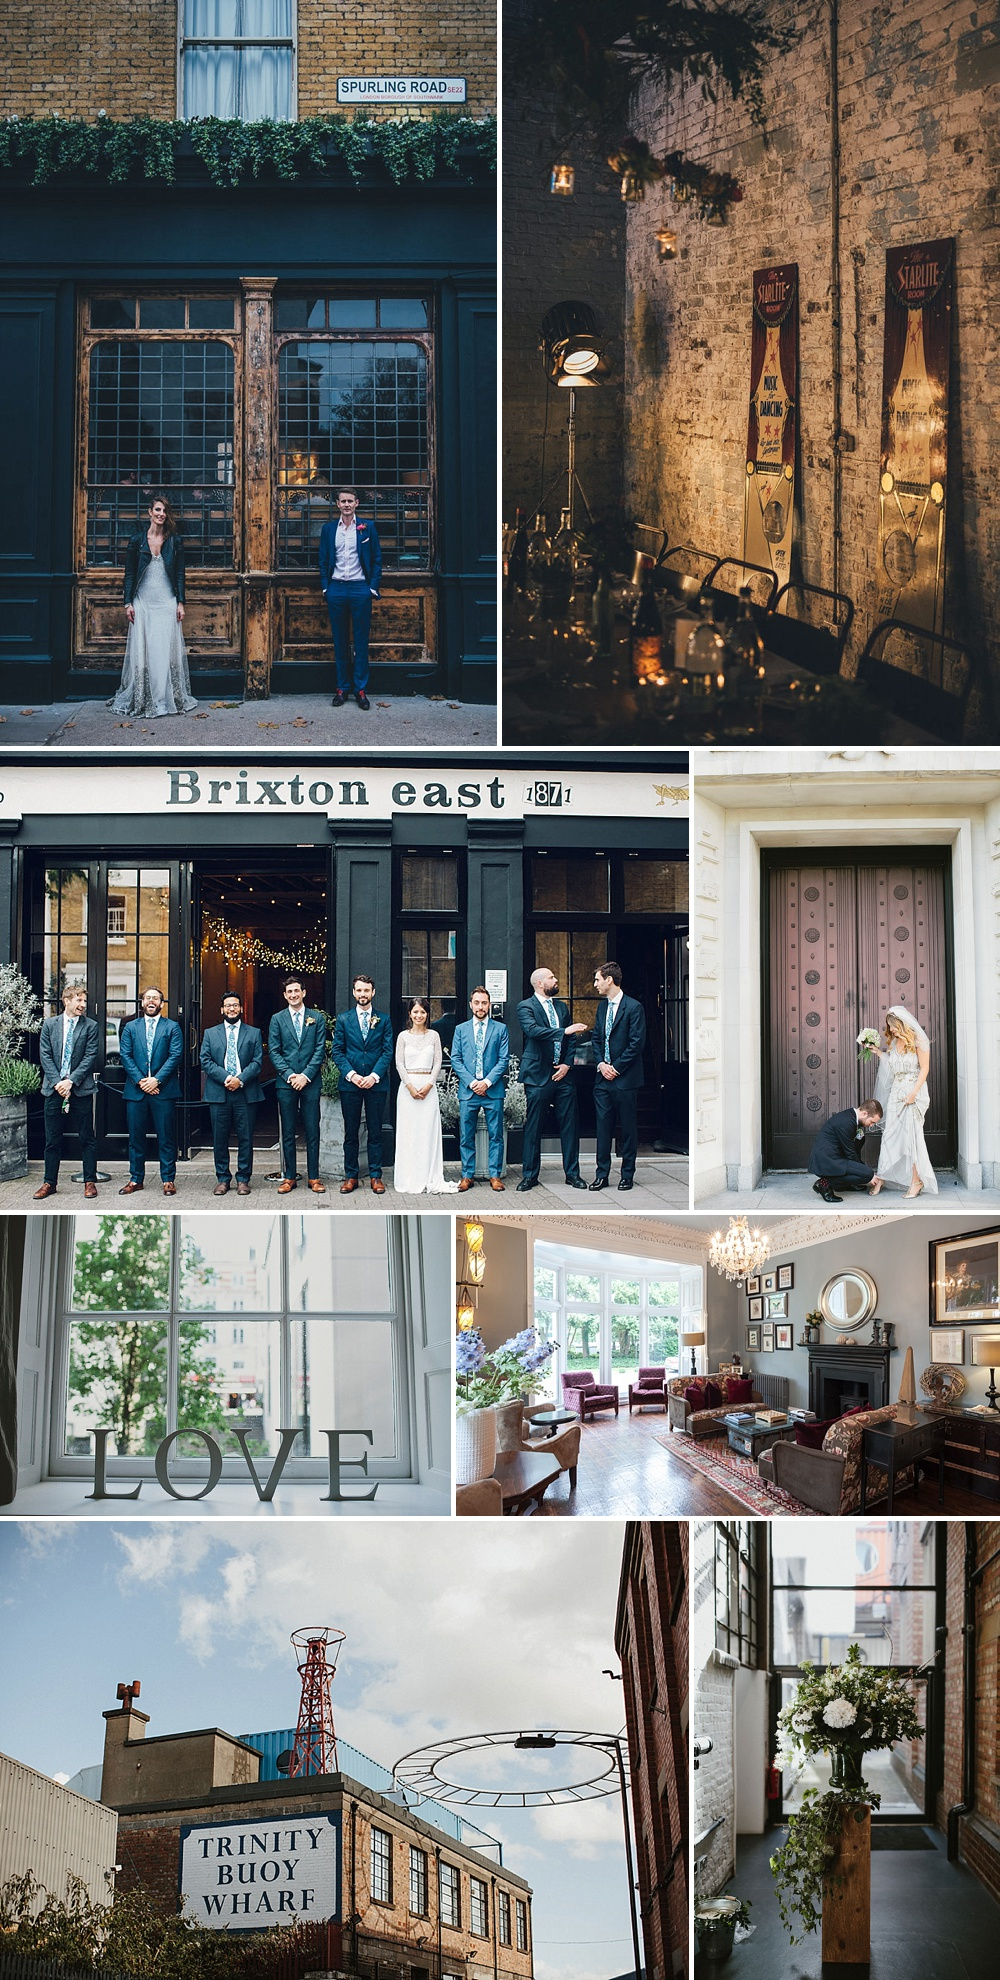 City Wedding Venues // The Love Lust List